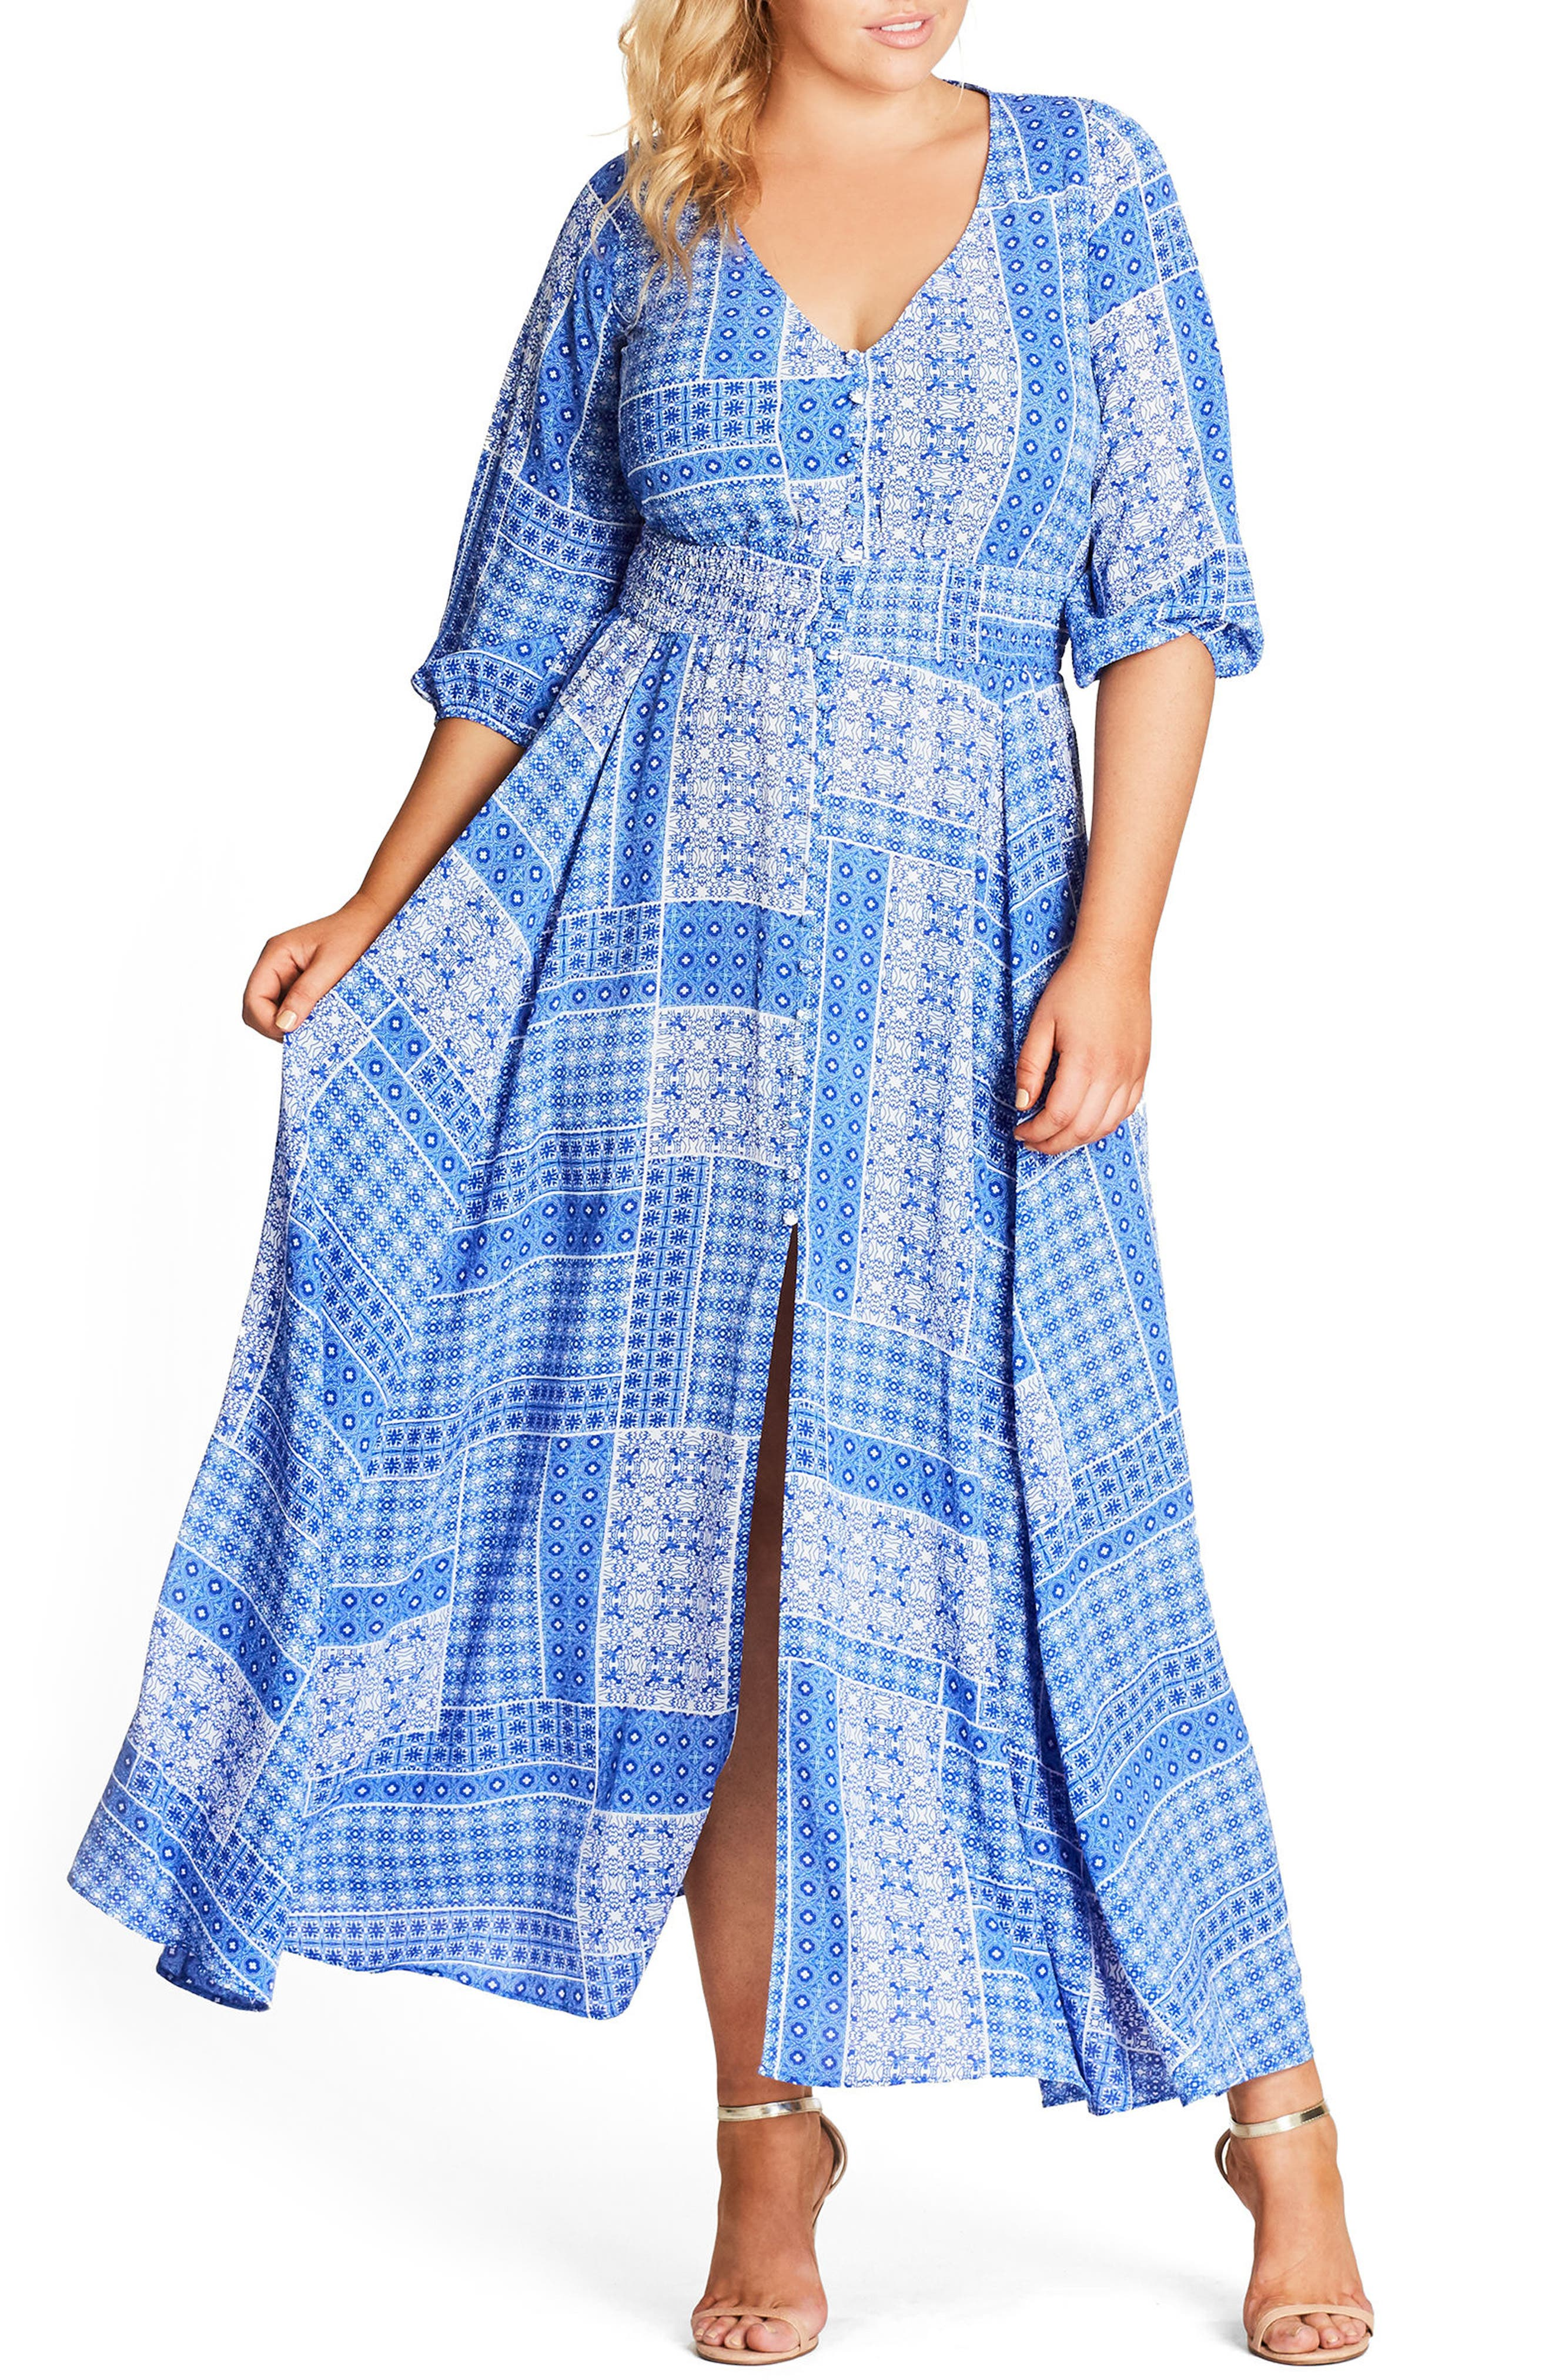 China Plate A-Line Maxi Dress,                         Main,                         color, CHINA PLATE